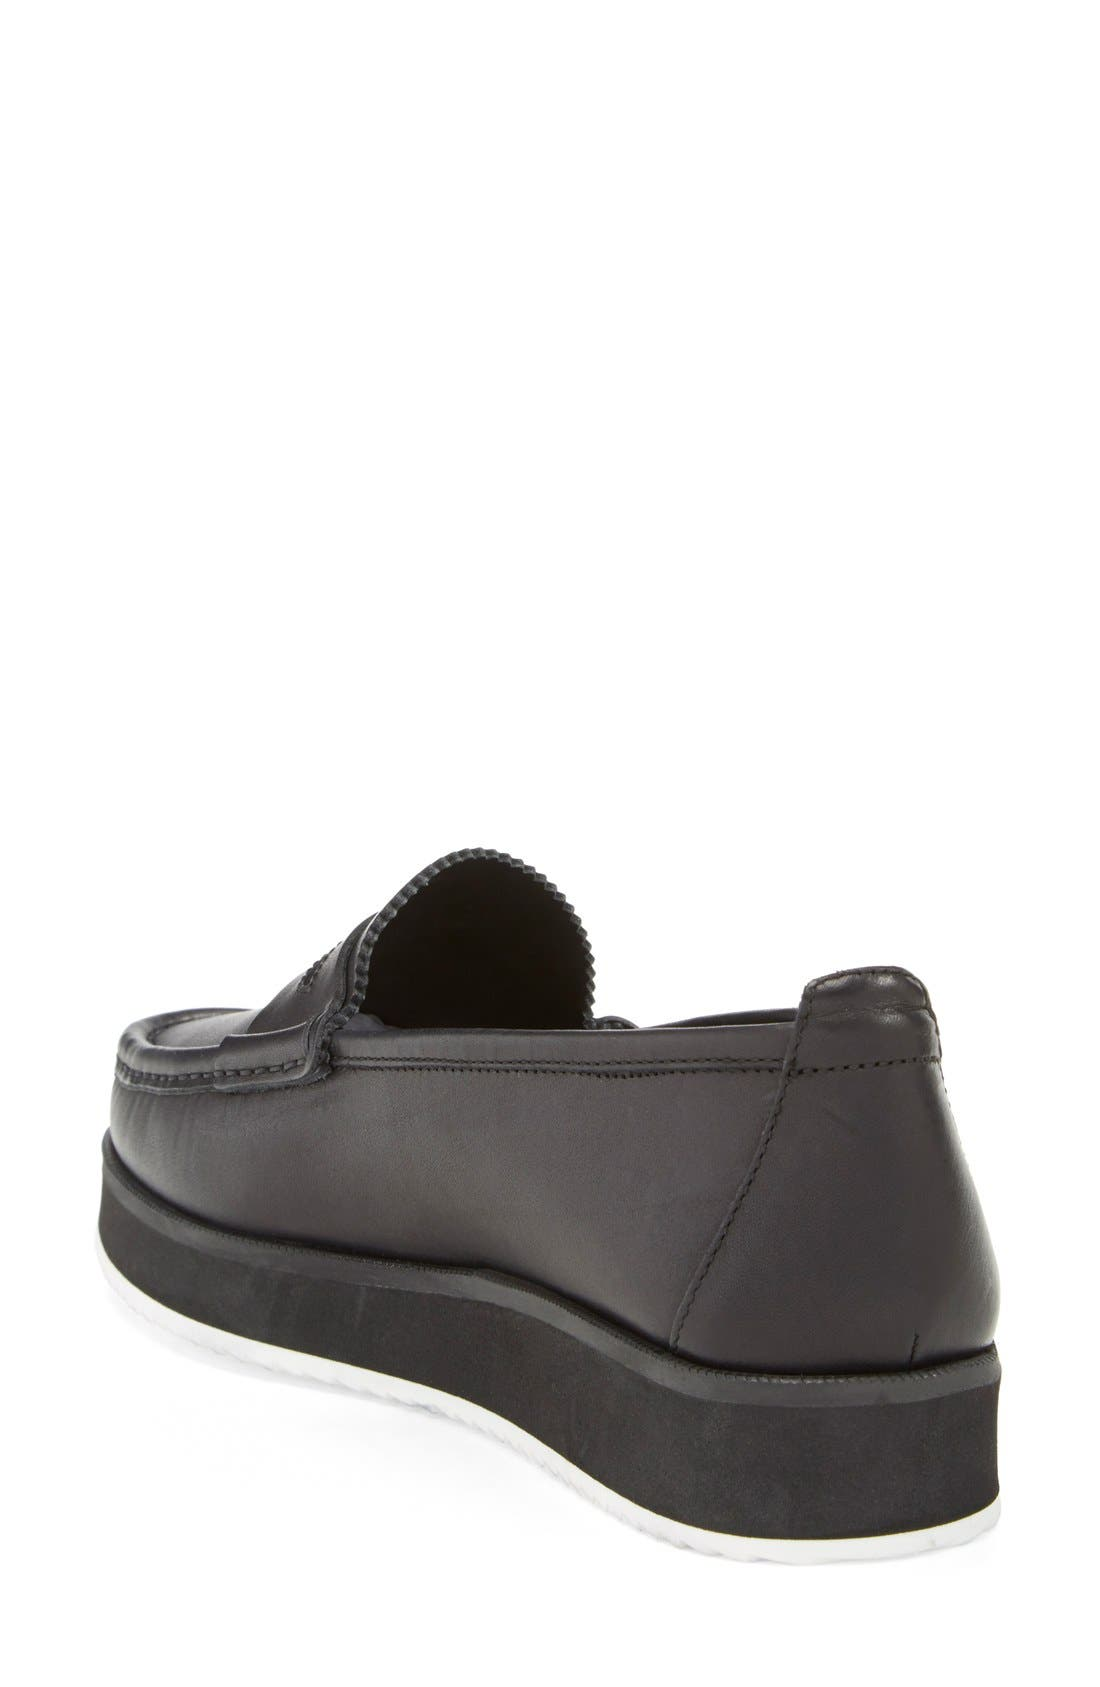 'Tanya' Penny Loafer,                             Alternate thumbnail 2, color,                             Black Leather